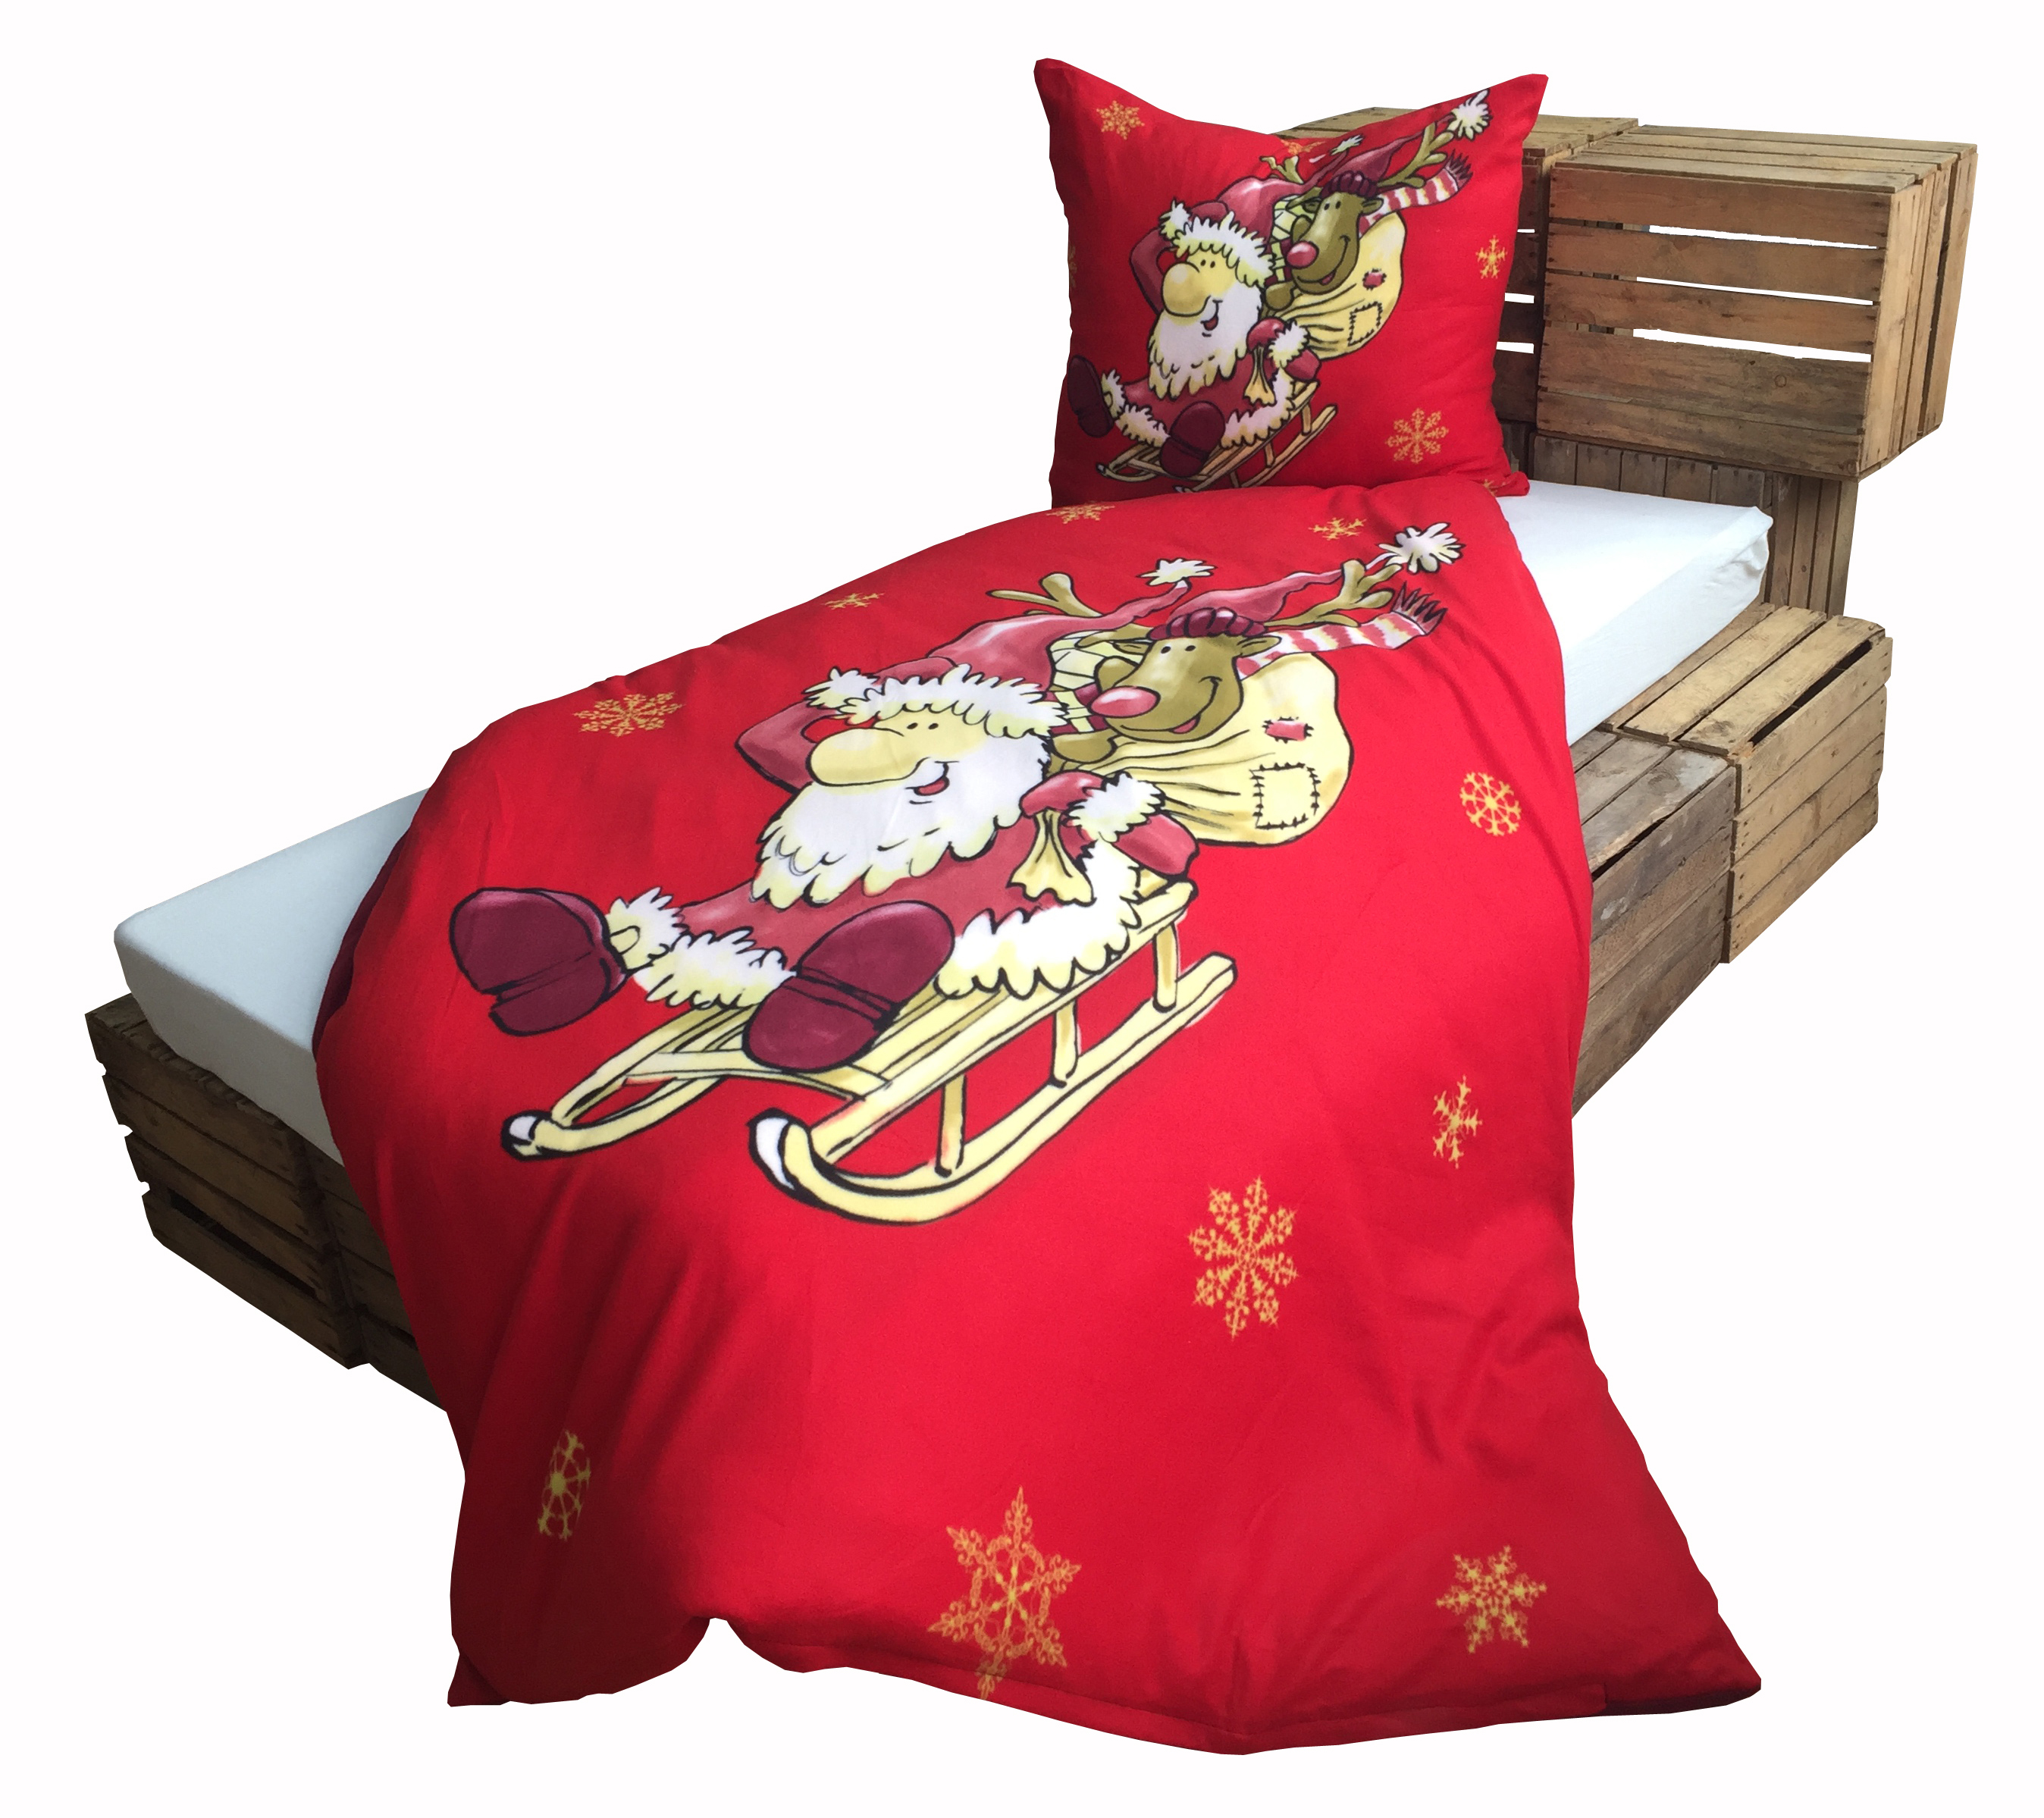 warme thermofleece bettw sche 4 teilig 135x200 cm rot weihnachtsmann wende bettw sche winter. Black Bedroom Furniture Sets. Home Design Ideas